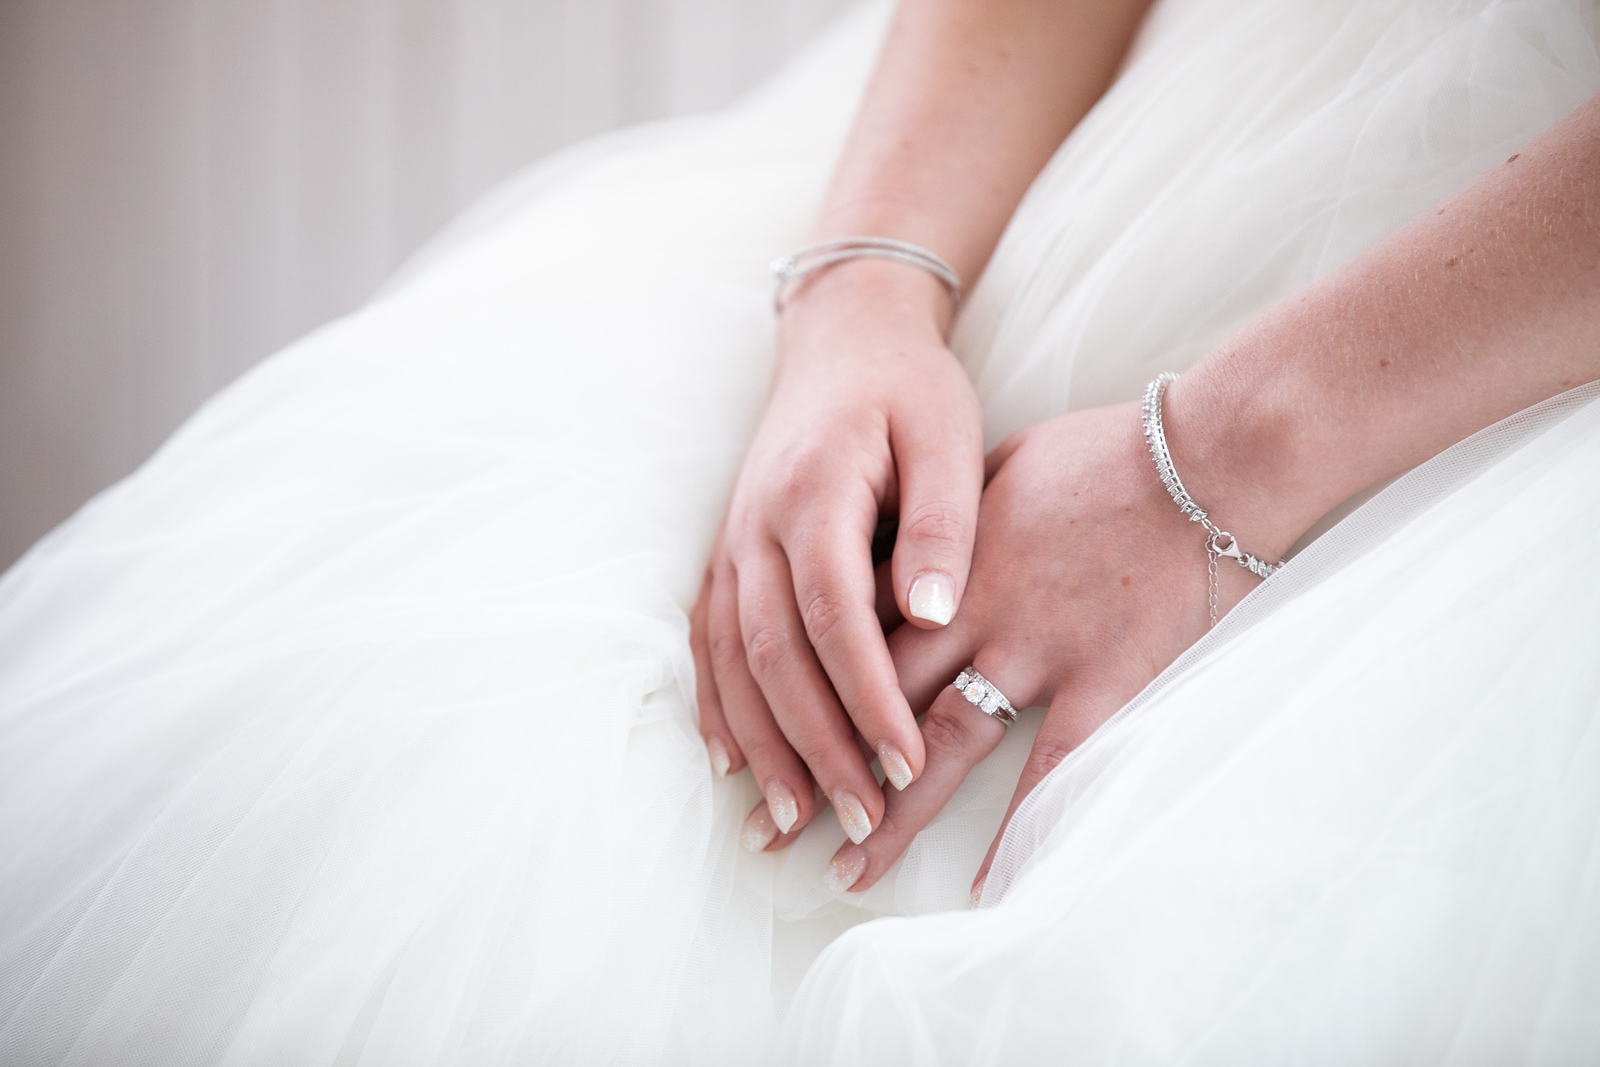 close up photo of a brides hand as she crosses them on her lap showing her simple bracelets and wedding ring